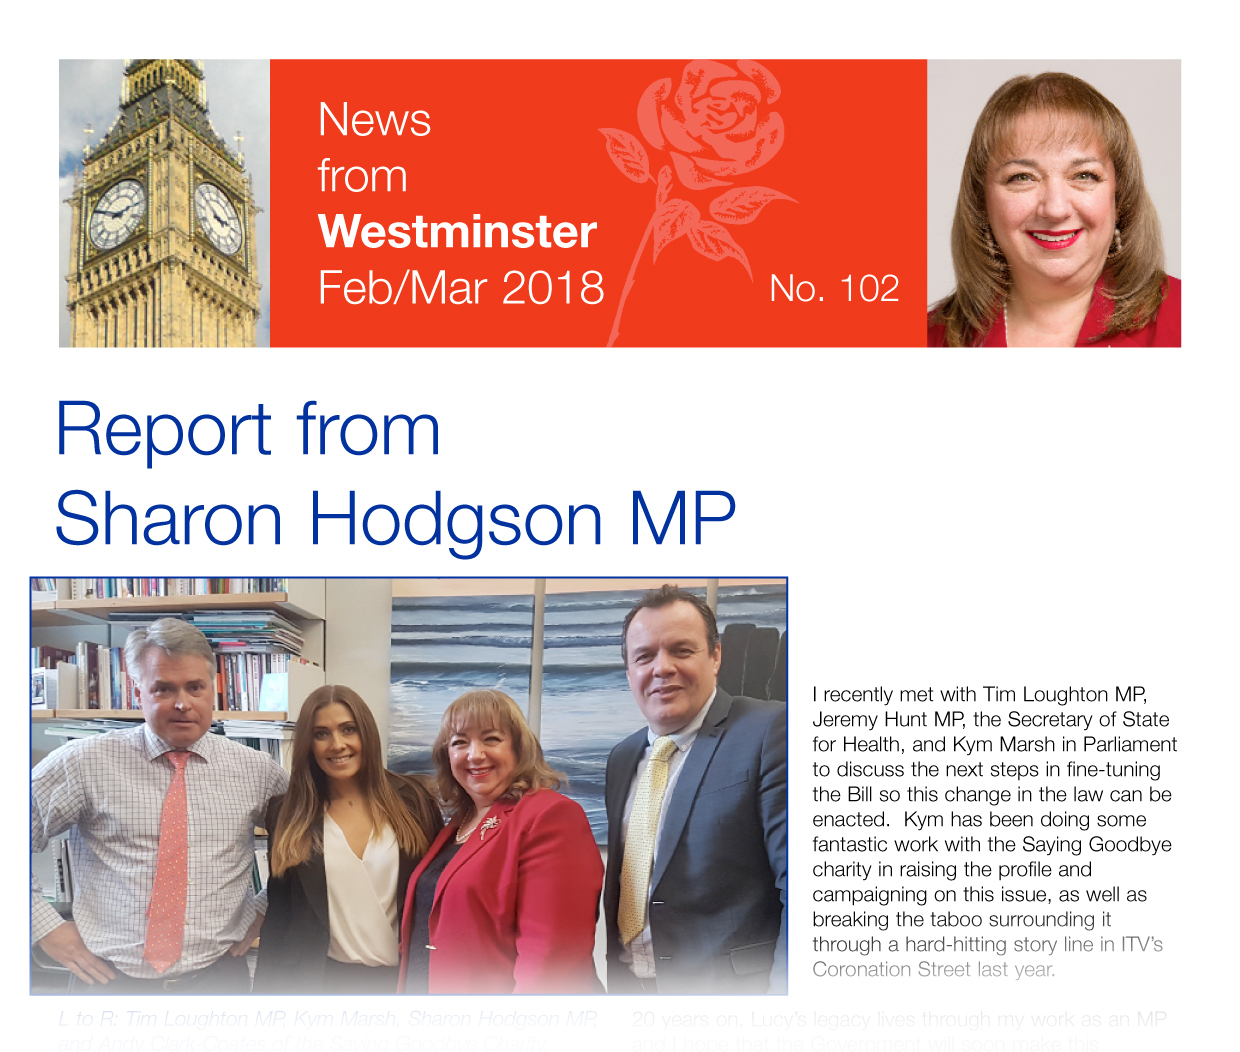 News from Westminster cover